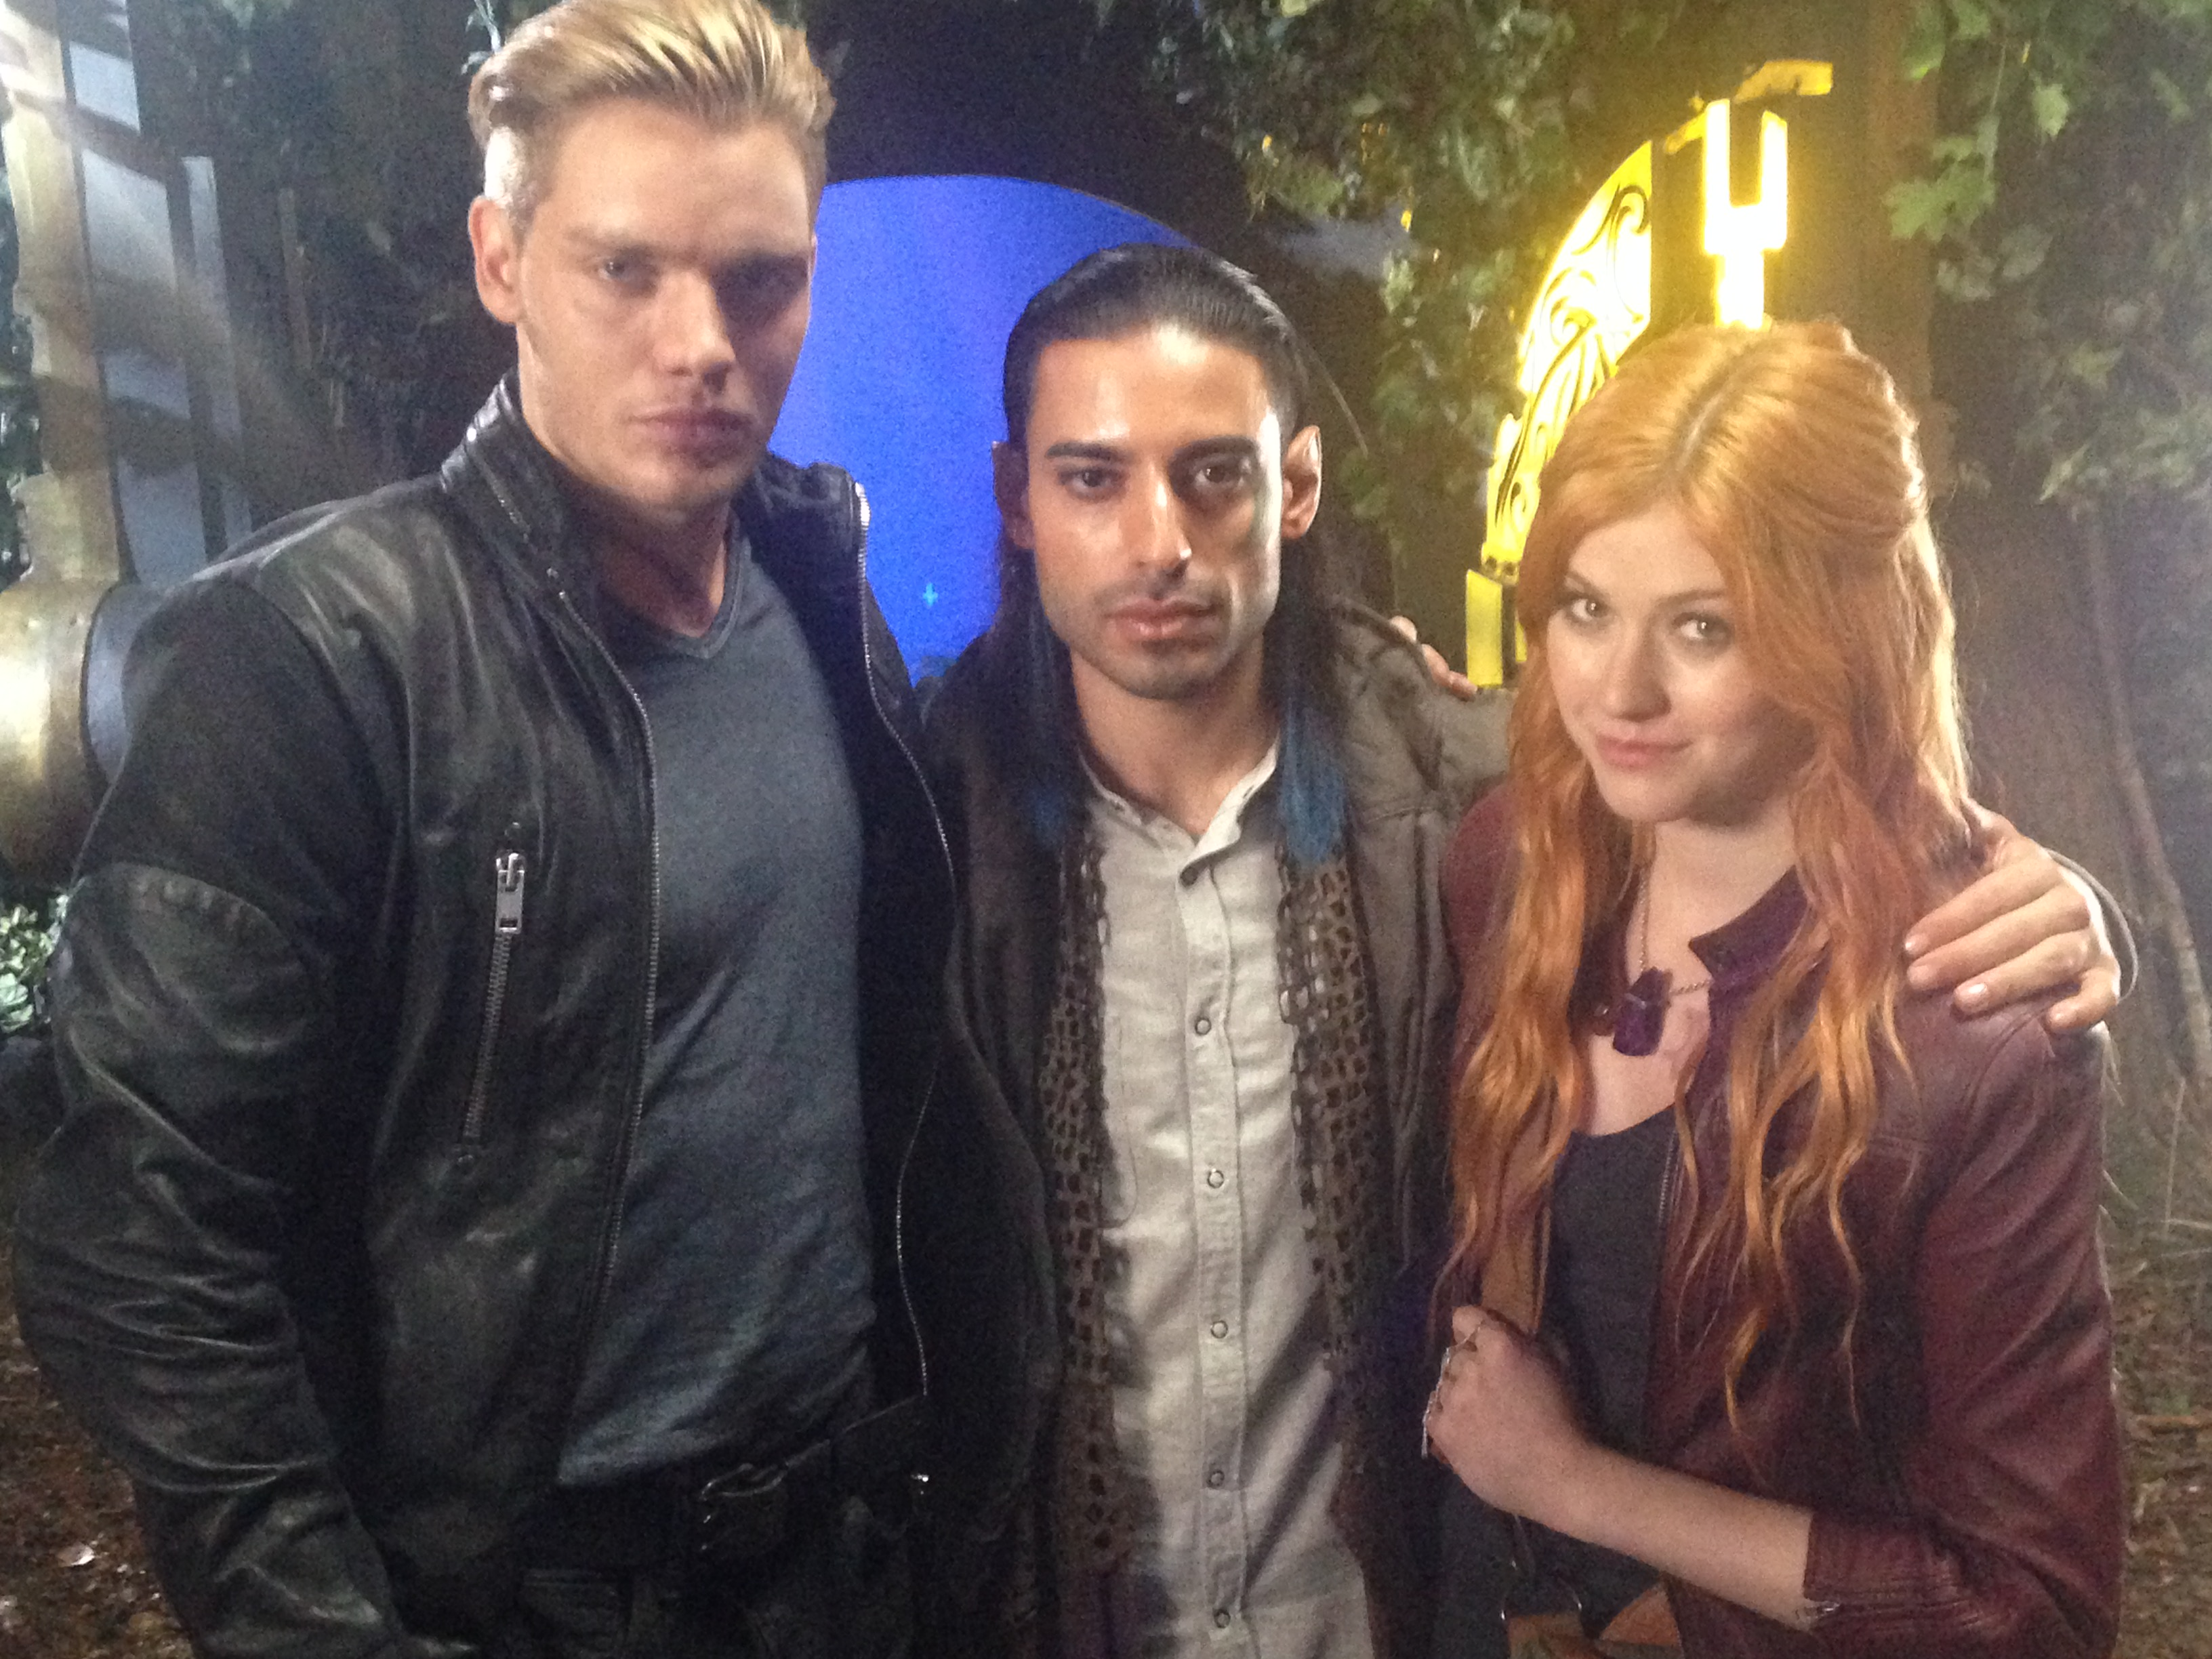 Shadowhunters - Behind The Scenes Photos From This World Inverted! - 1013